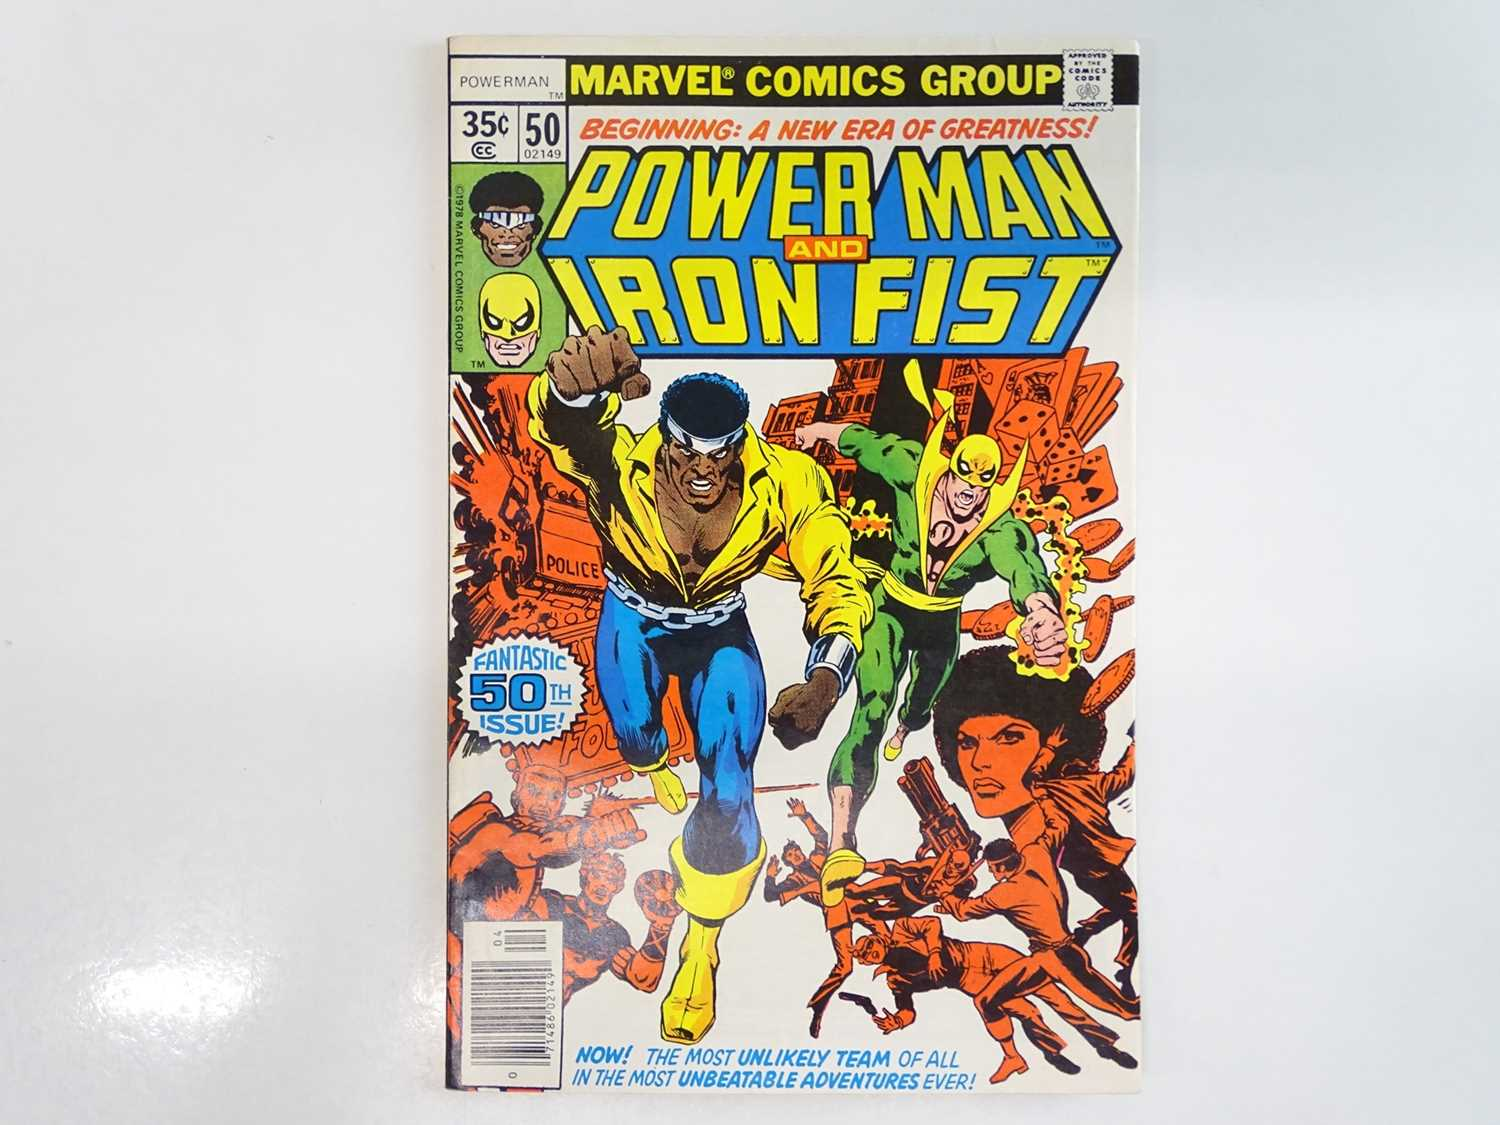 POWER MAN & IRON FIST #50 - (1978 - MARVEL) First appearance of the Heroes For Hire + Title